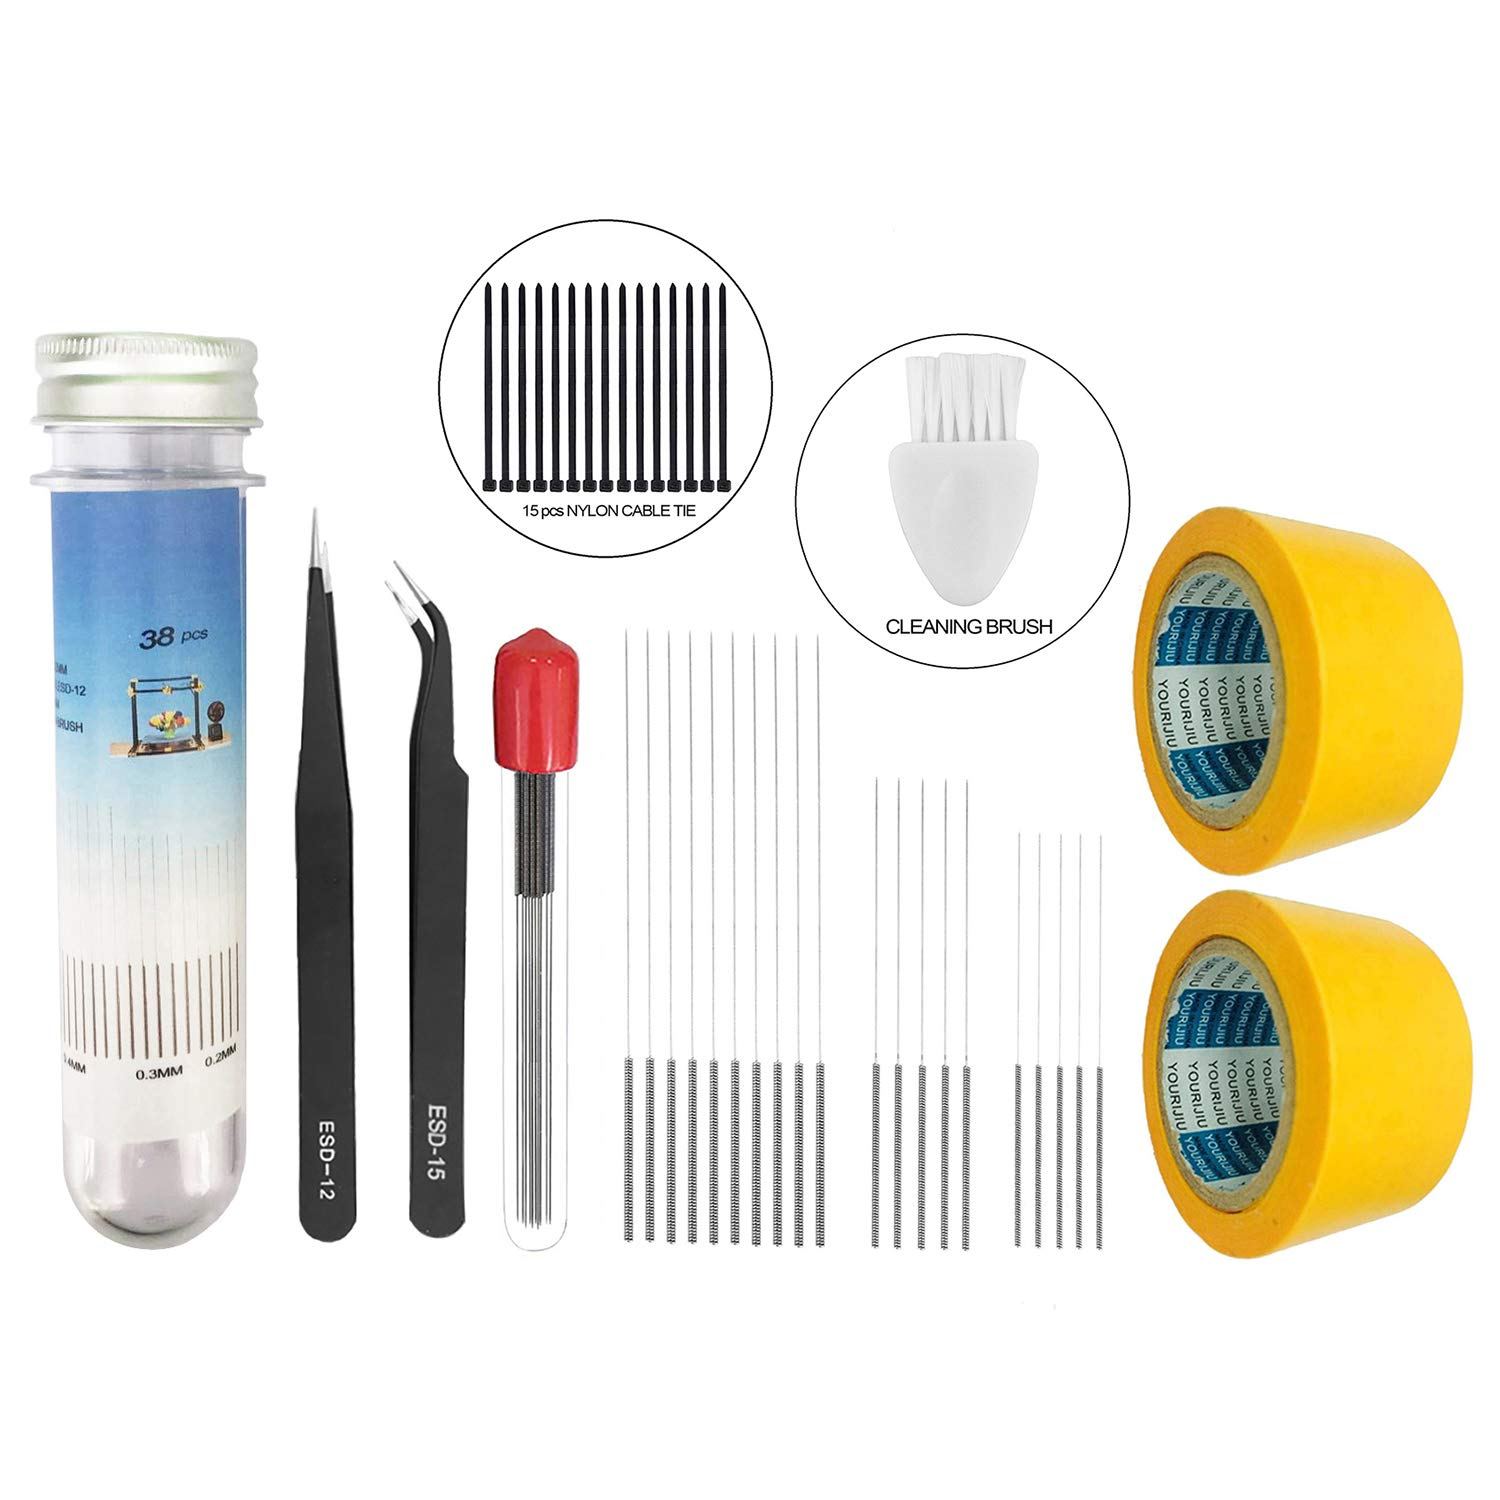 2pcs Heat Bed Sticker Yellow Tape 50mm Width,15pcs Nylon Cable Tie and 1pcs Little Cleaning Brush Sunhokey 3D Printer Nozzle Cleaning Kit,0.4mm//0.3mm//0.2mm Needles and Tweezer Tool Kit